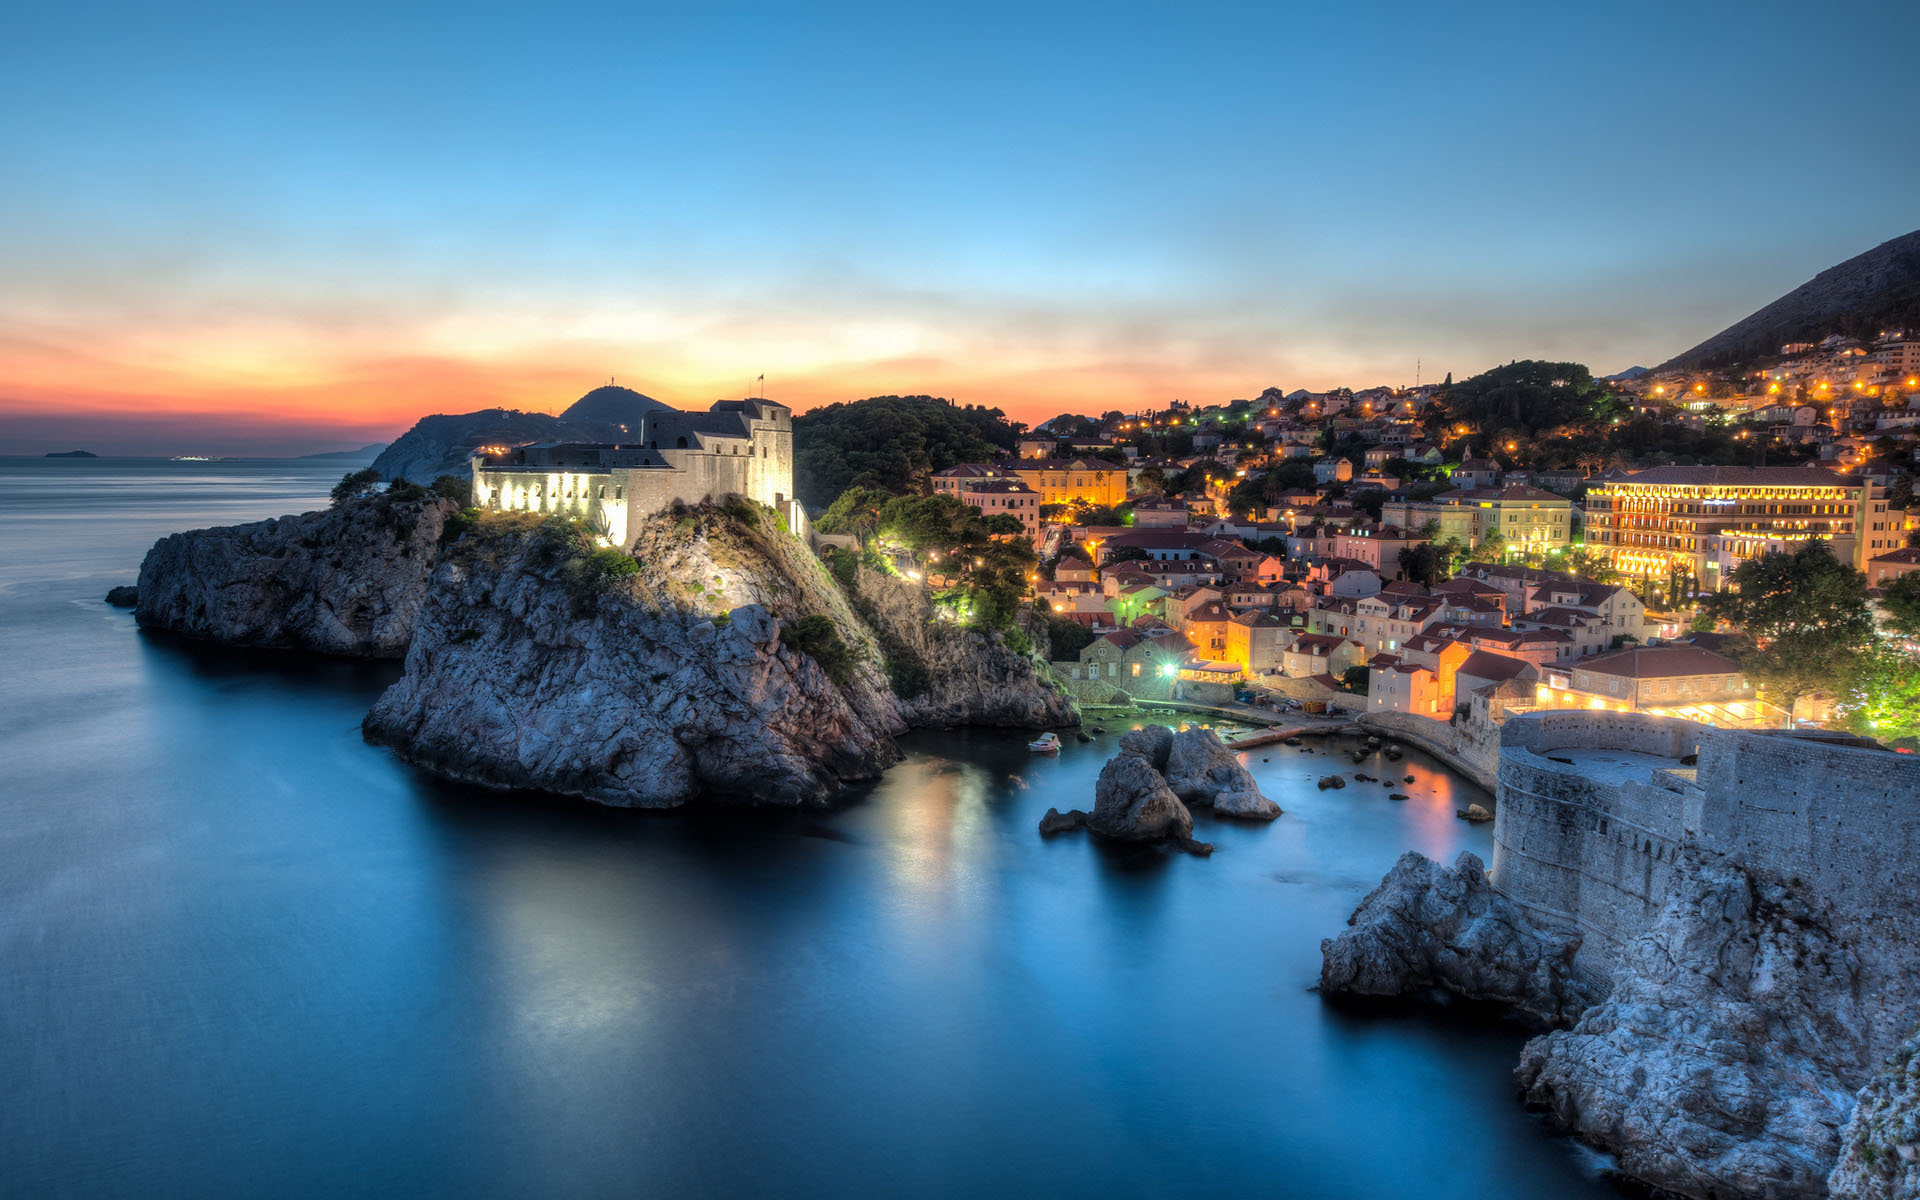 Adriatic Paradise - The Coast Which Has It All